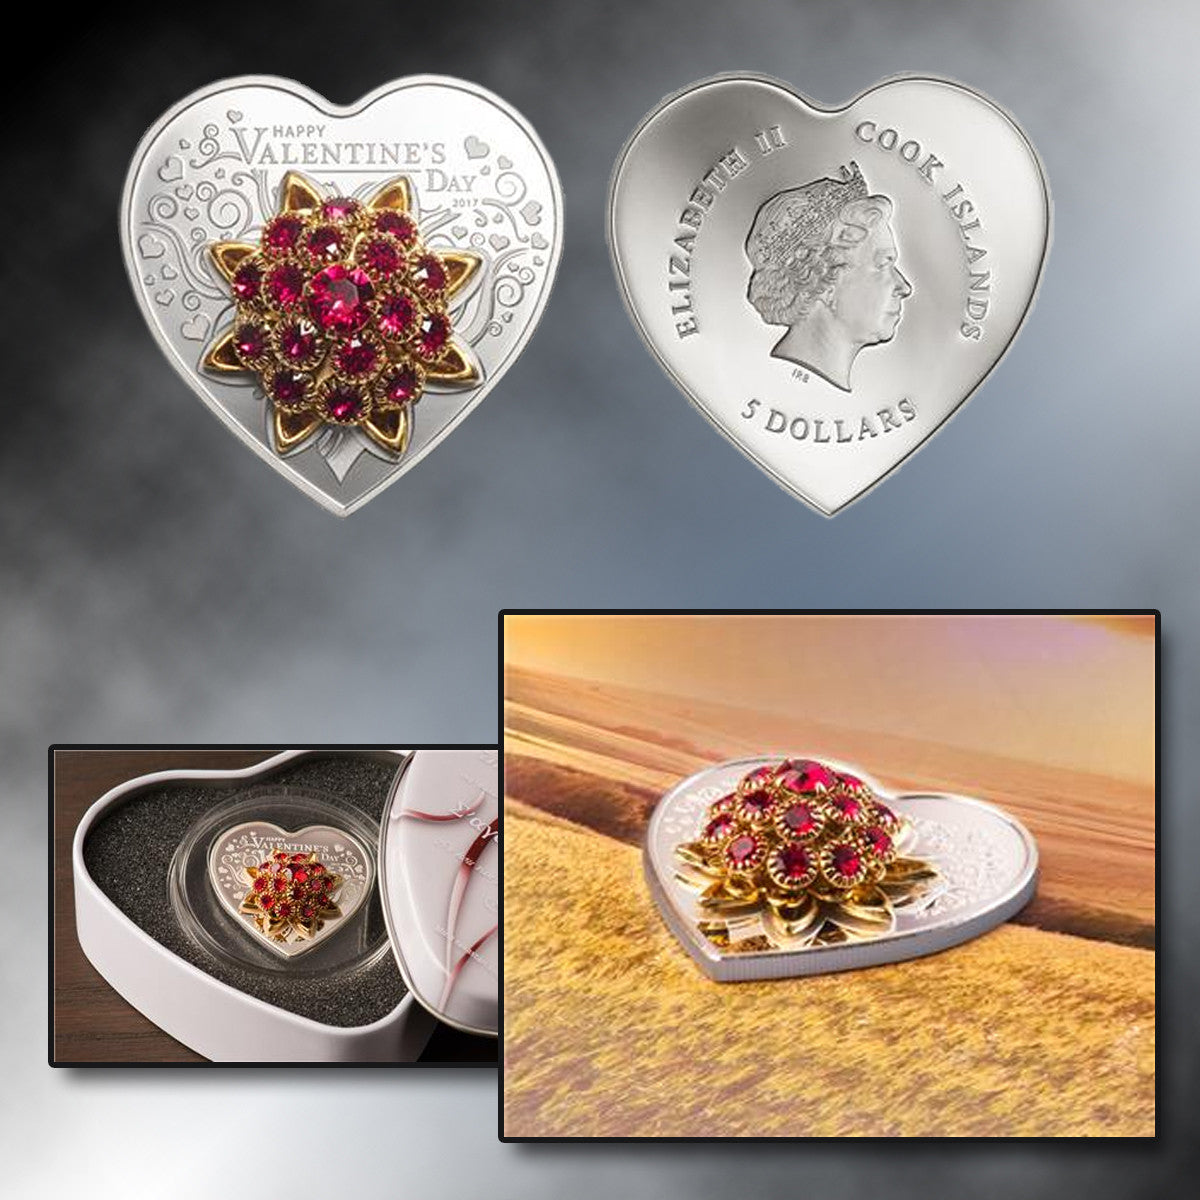 2017 Cook Islands Silver Happy Valentine's Day-Heart Shape Coin with Swarovski Crystals